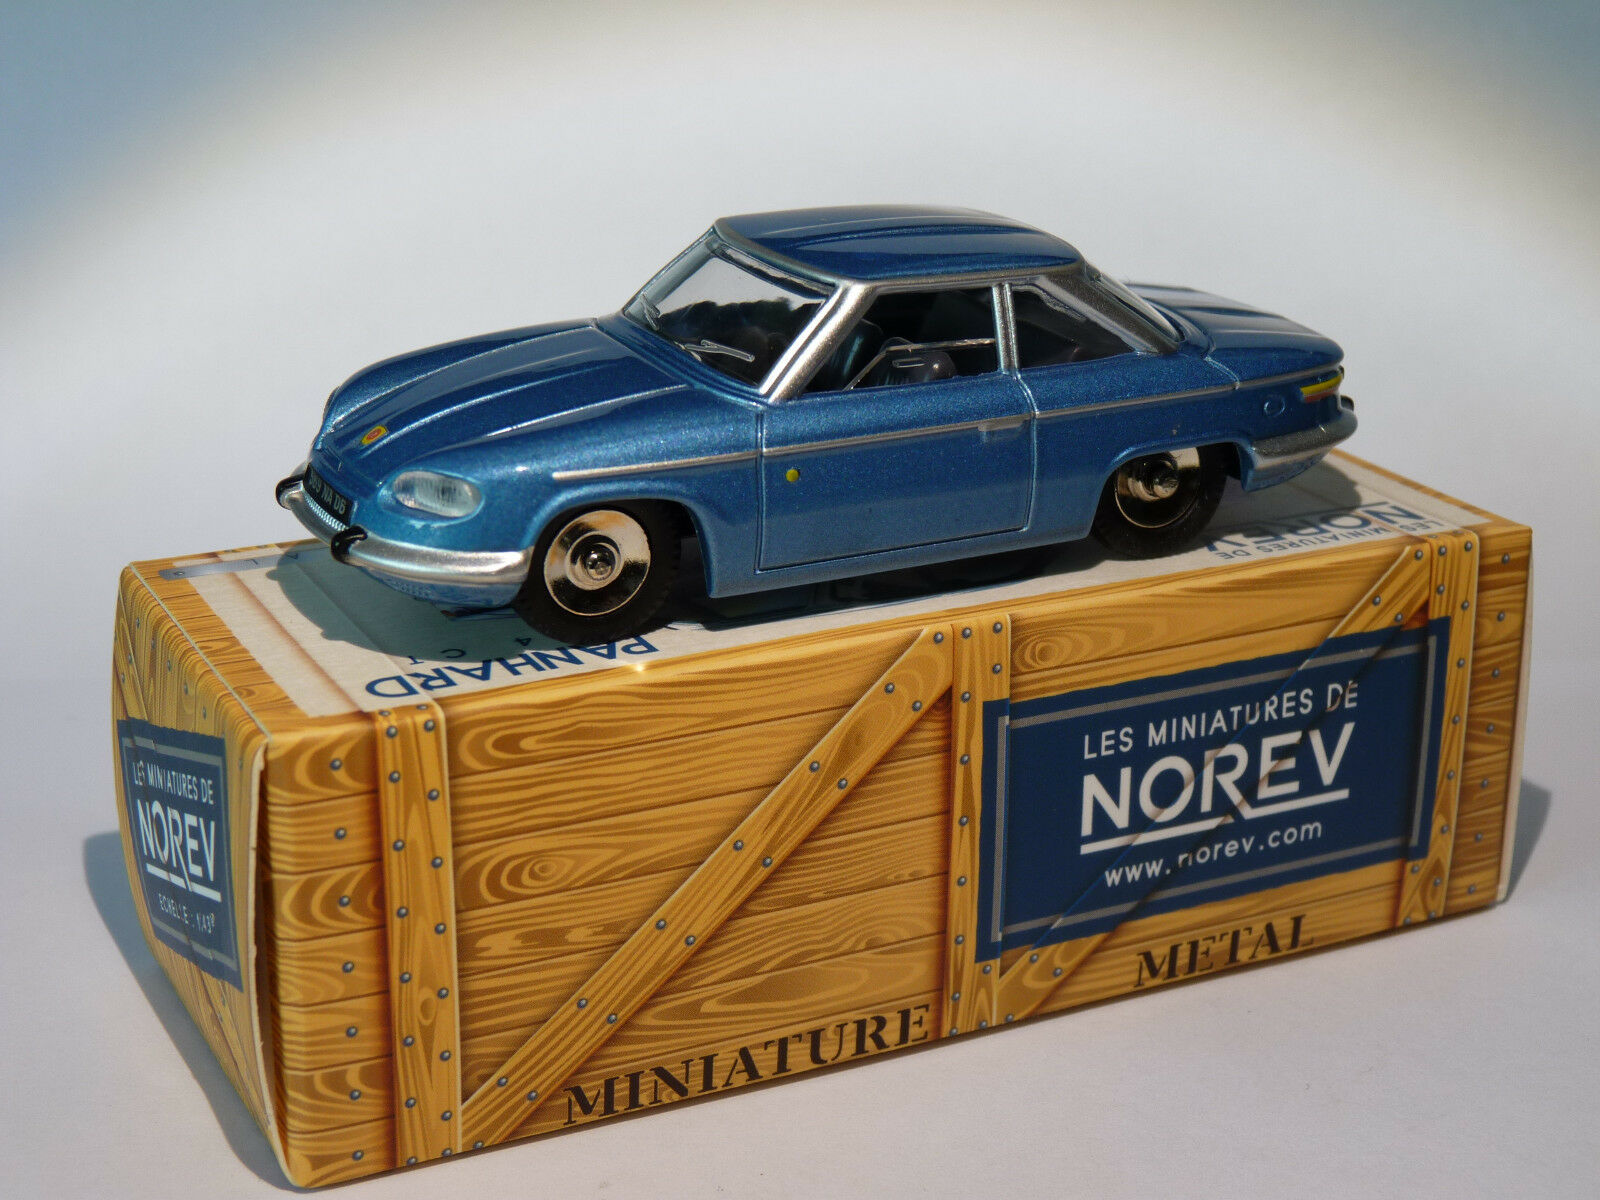 Panhard 24 CT choose 1 43 of Norev   as Dinky Toys Solido Cij